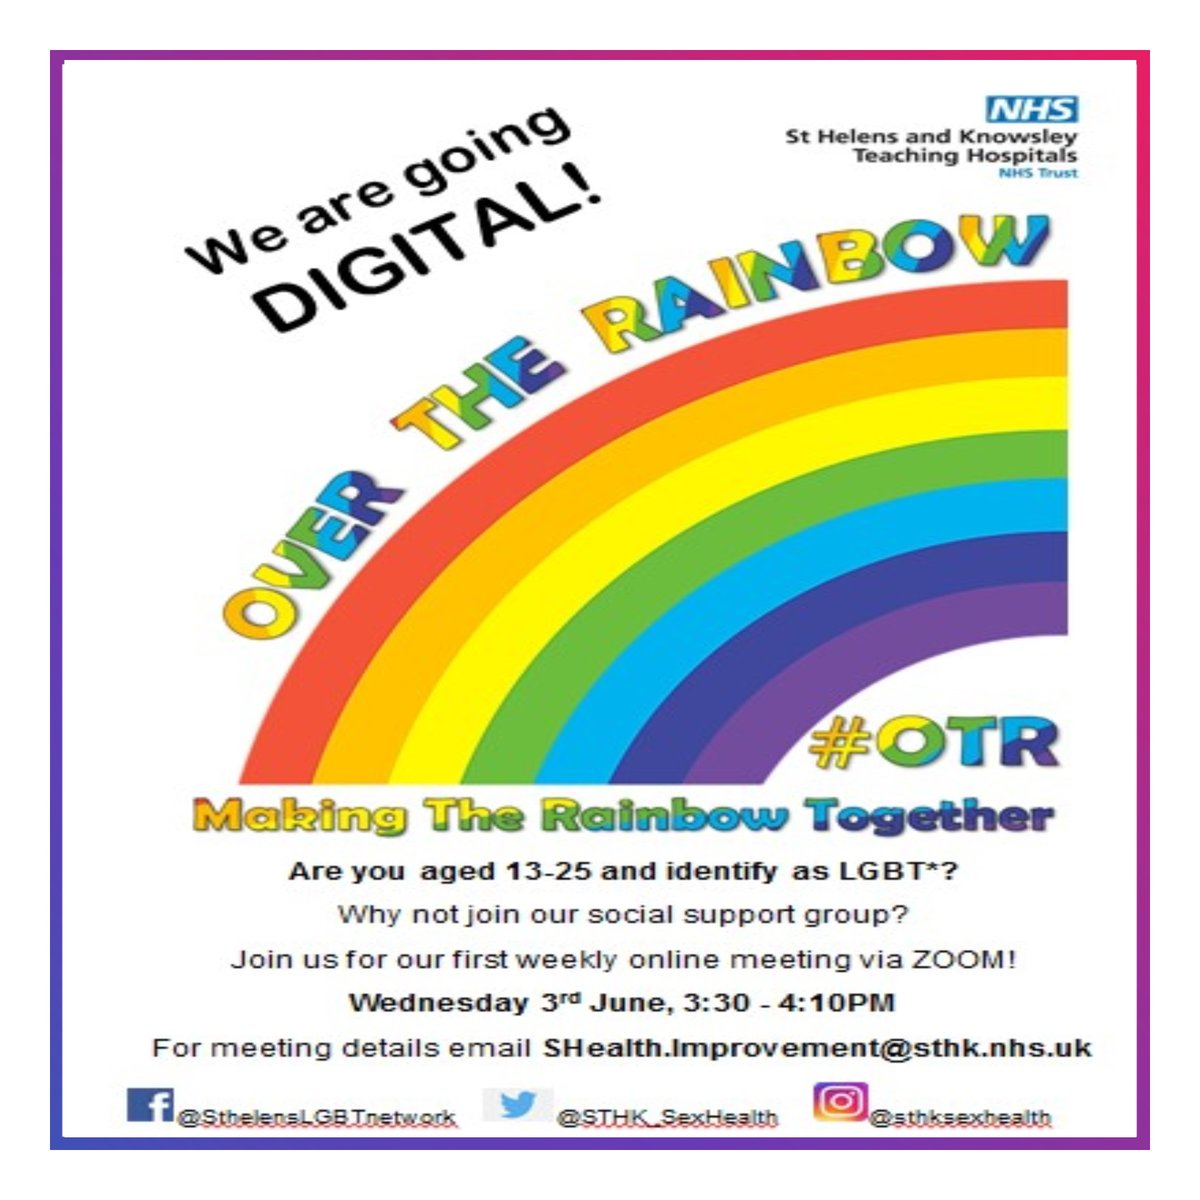 Identify as LGBTQ+? Why not join the Over The Rainbow social support group?   For more information contact - 🌈  SHealth.Improvement@sthk.nhs.uk    #lgbt #loveislove #gay #lesbian #transgender #bisexual #lgbtpride 🏳️🌈 https://t.co/azPLo1qNKM